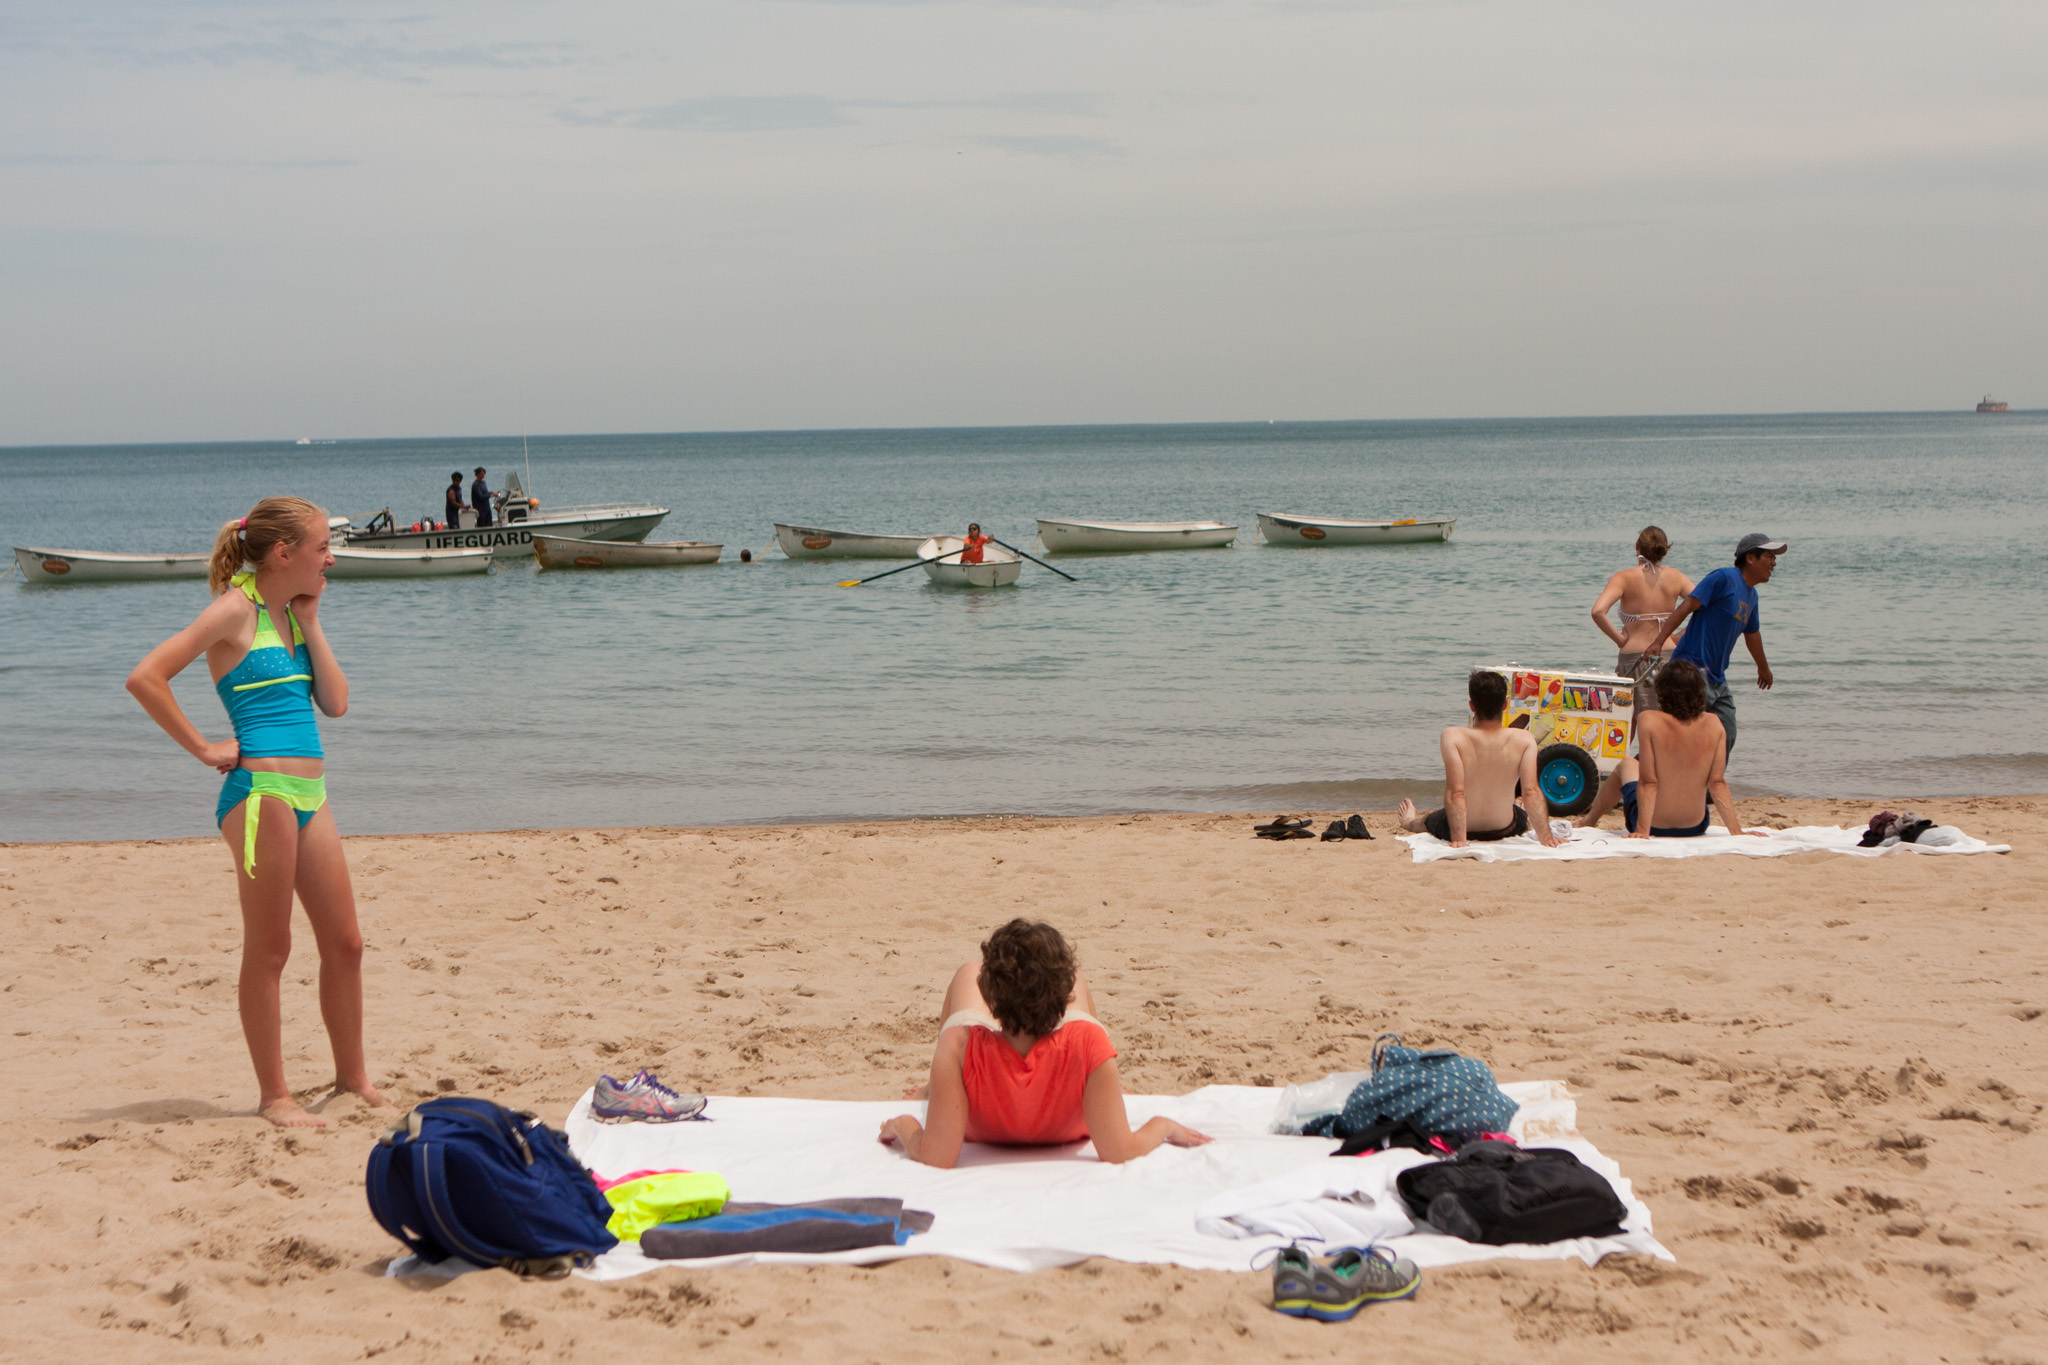 How to spend Memorial Day weekend in Chicago